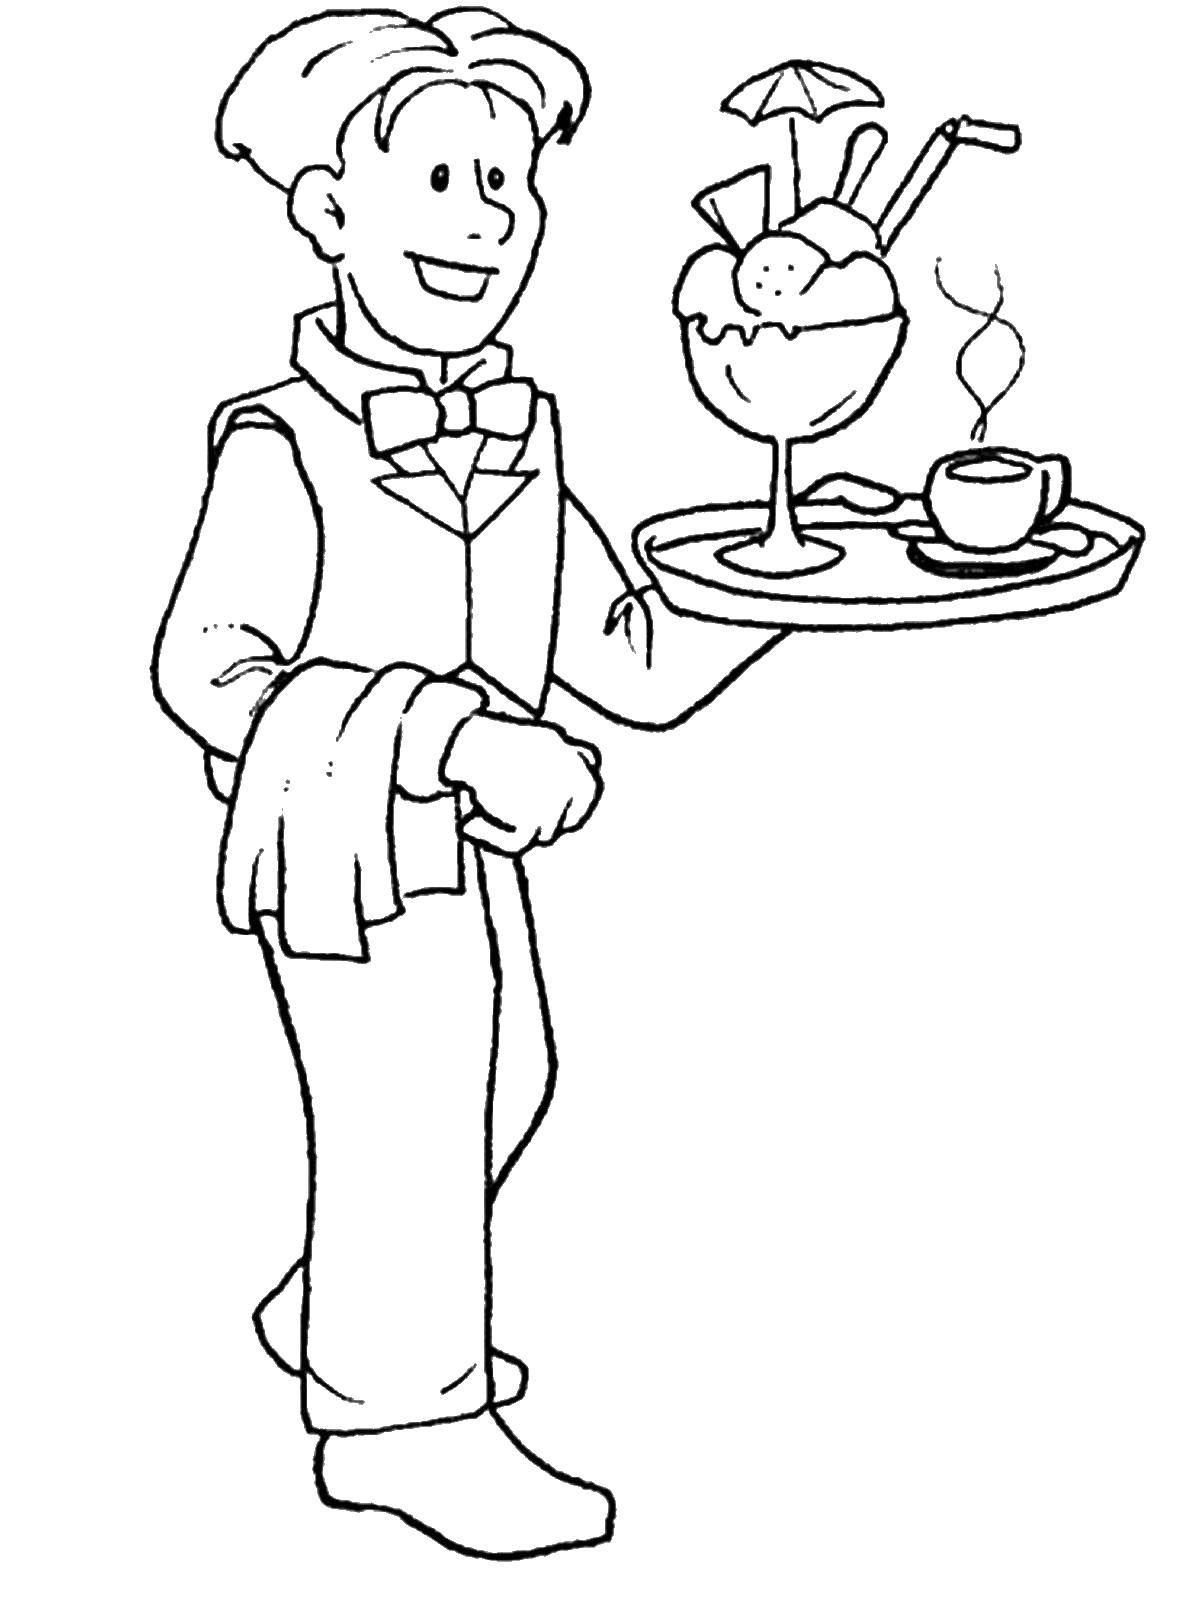 Coloring The waiter Download ,professions, waiter,.  Print